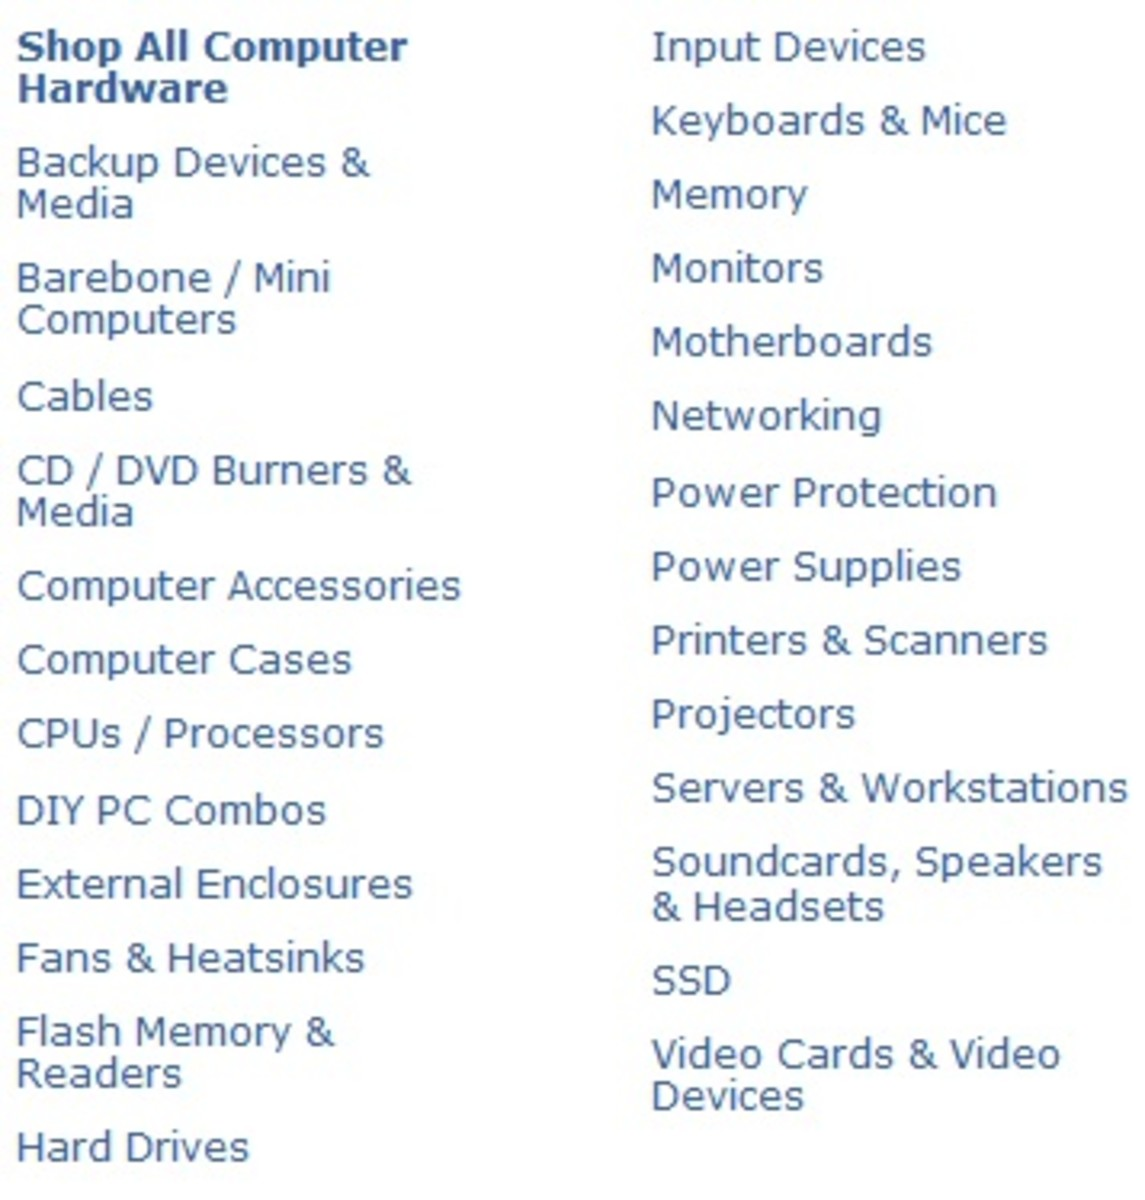 A listing of all the hardware that can be shopped for on Newegg.